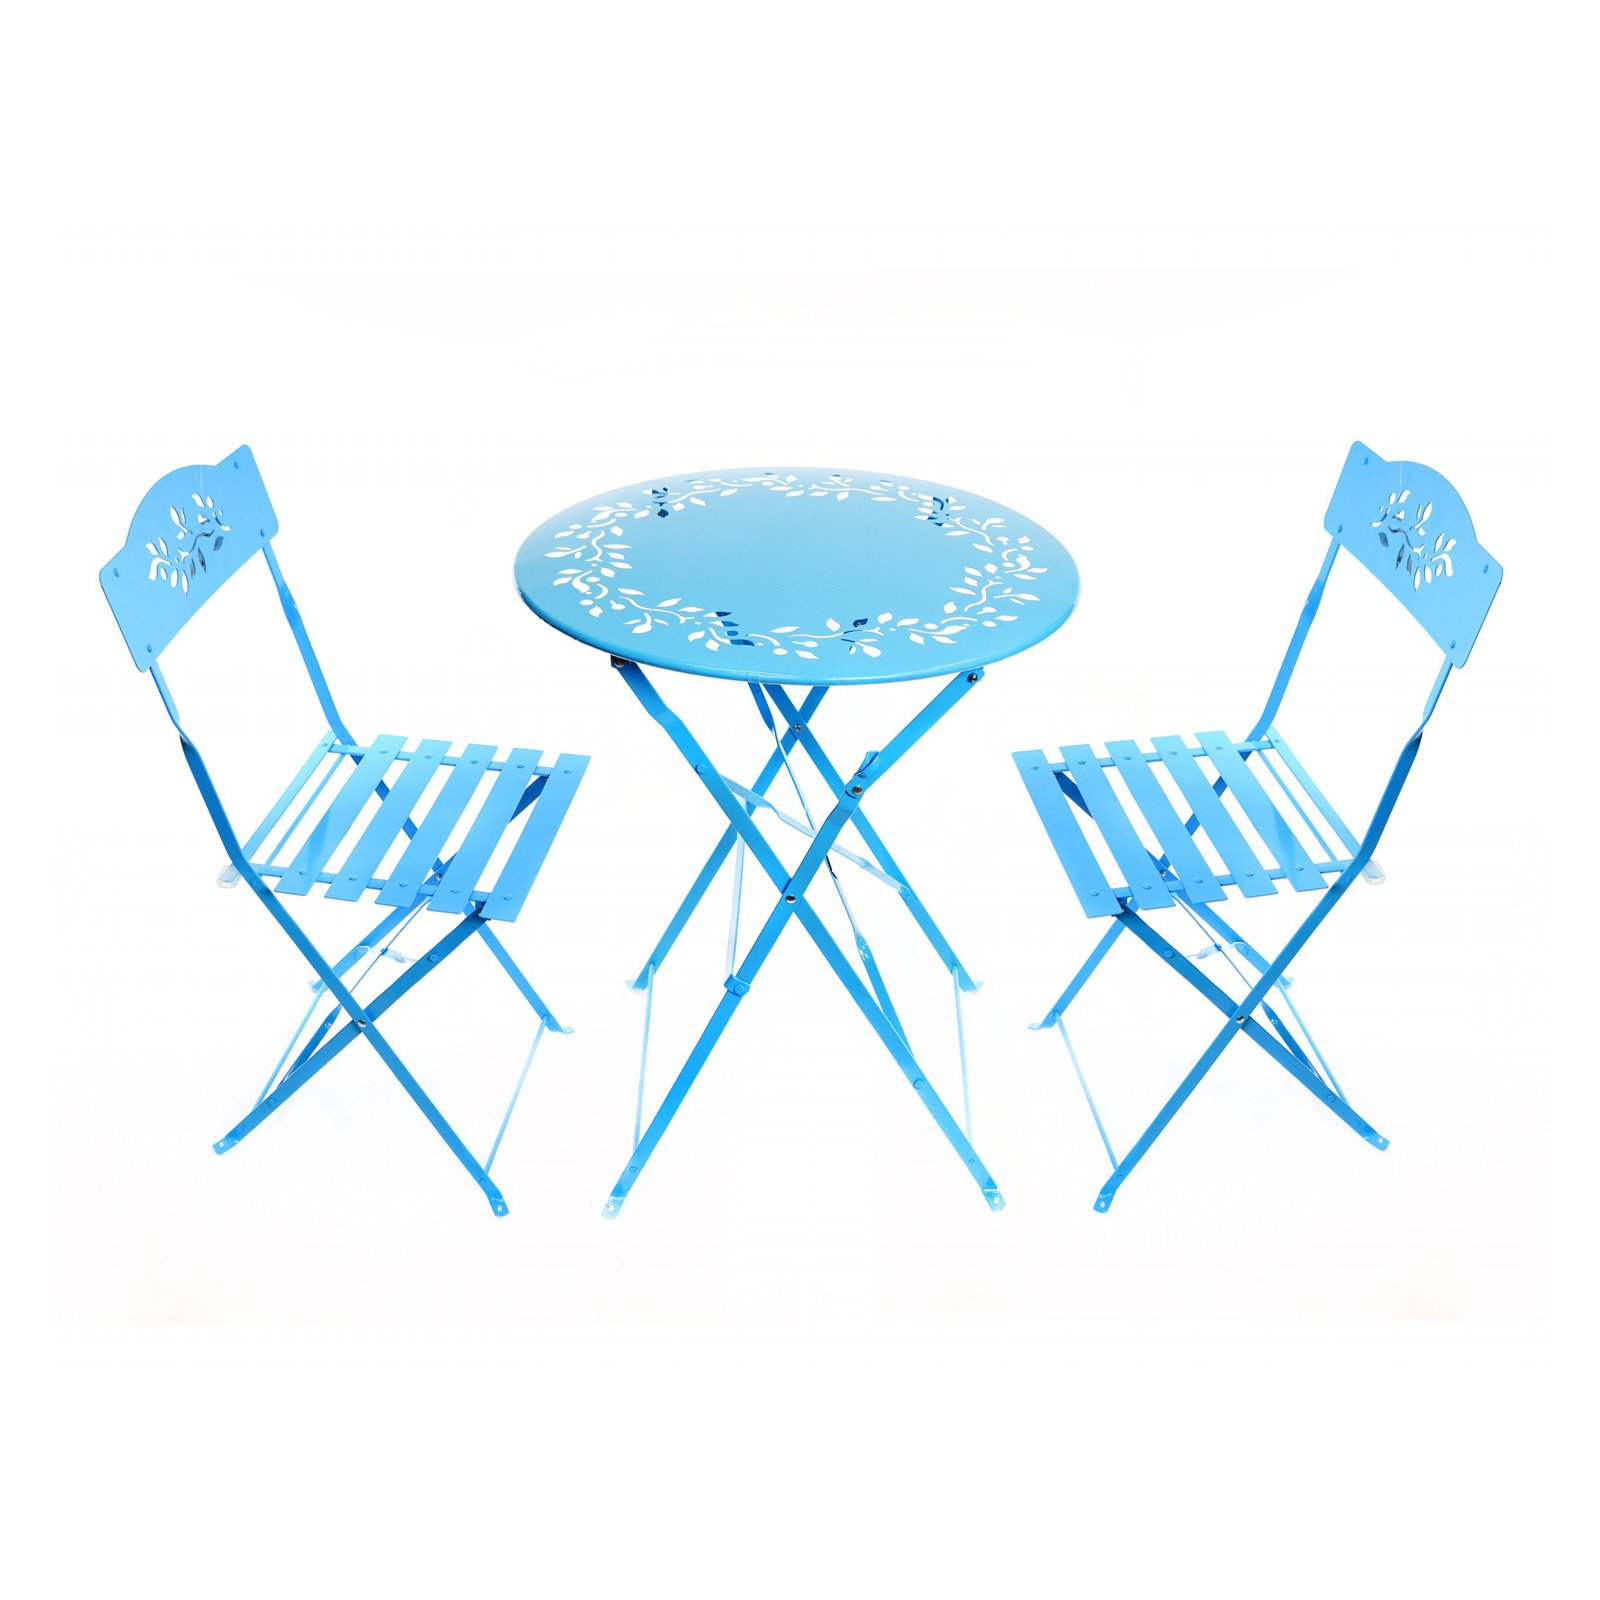 Alpine Metal 3-Piece Floral Bistro Set, 1 Table and 2 Chairs, Blue, 28 Inch Tall